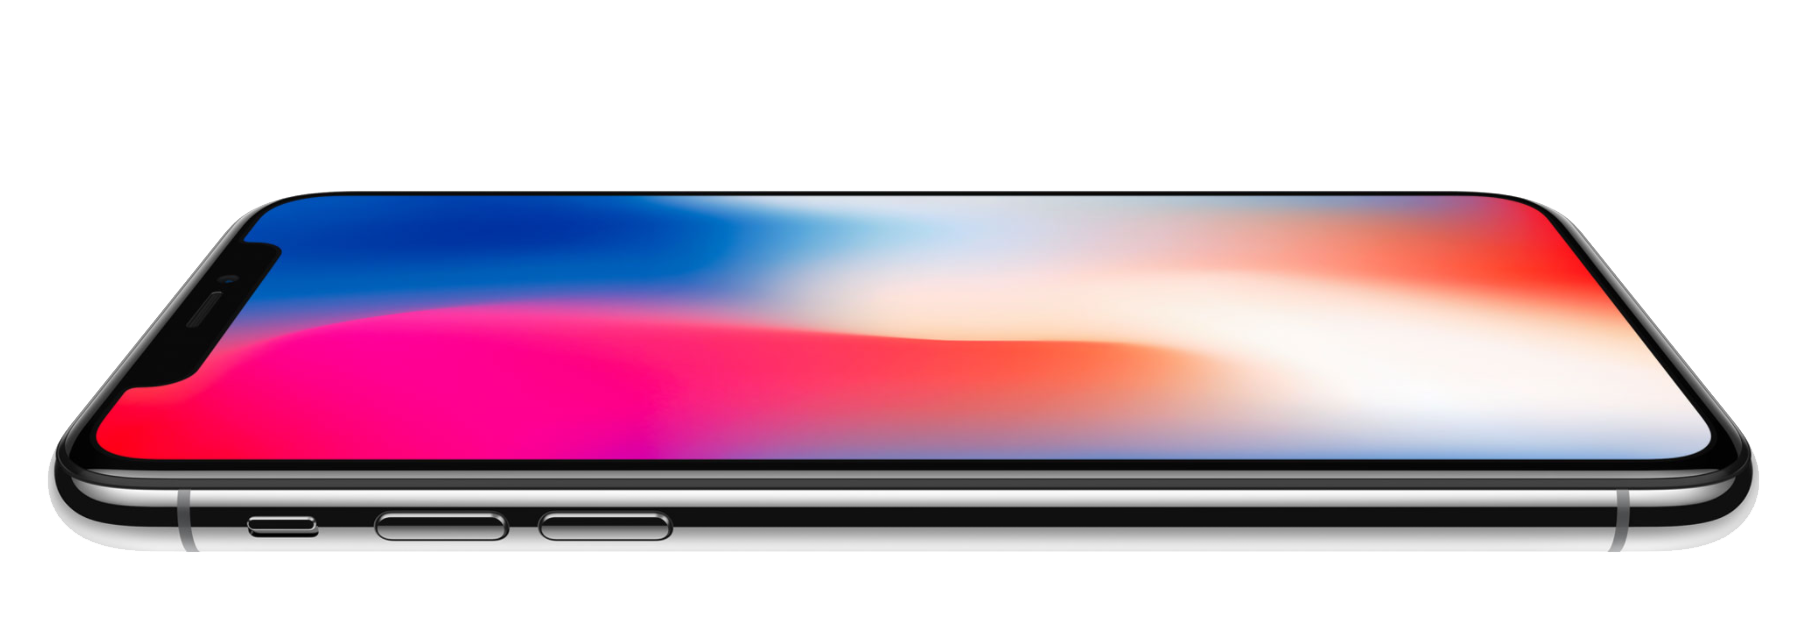 Apple iPhone X PNG Image